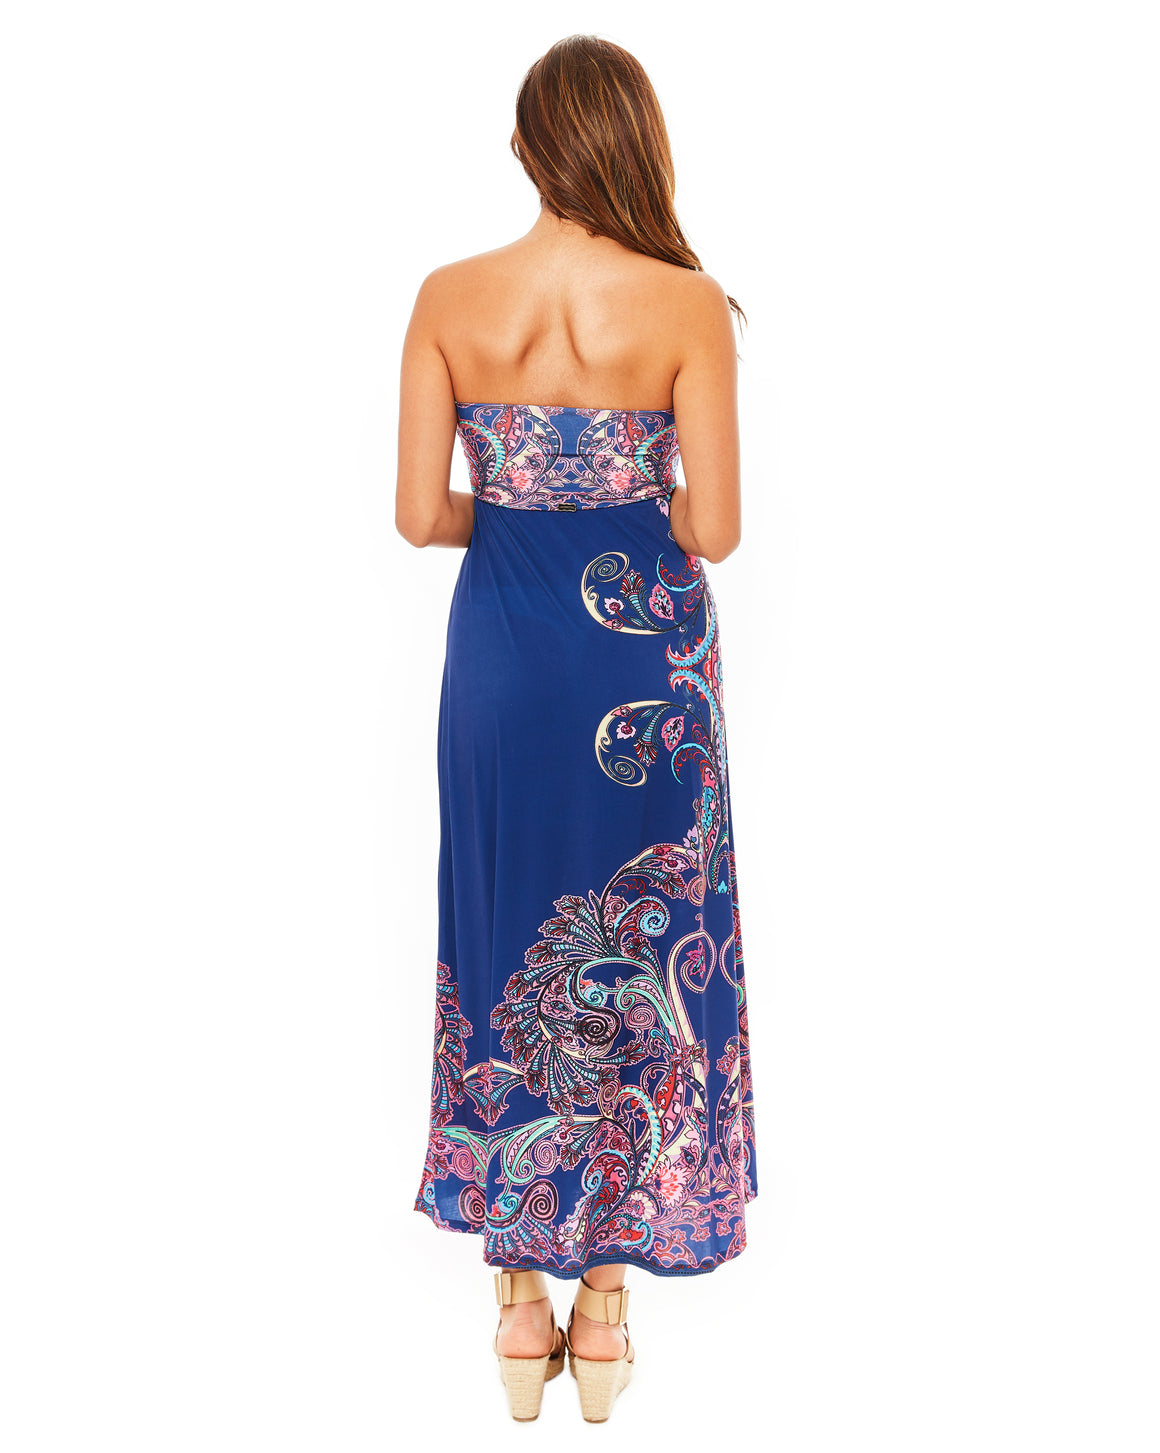 Tango Dress Navy Blue Floral Maxi Dress Long Strapless Tube Top Flowy Cover up